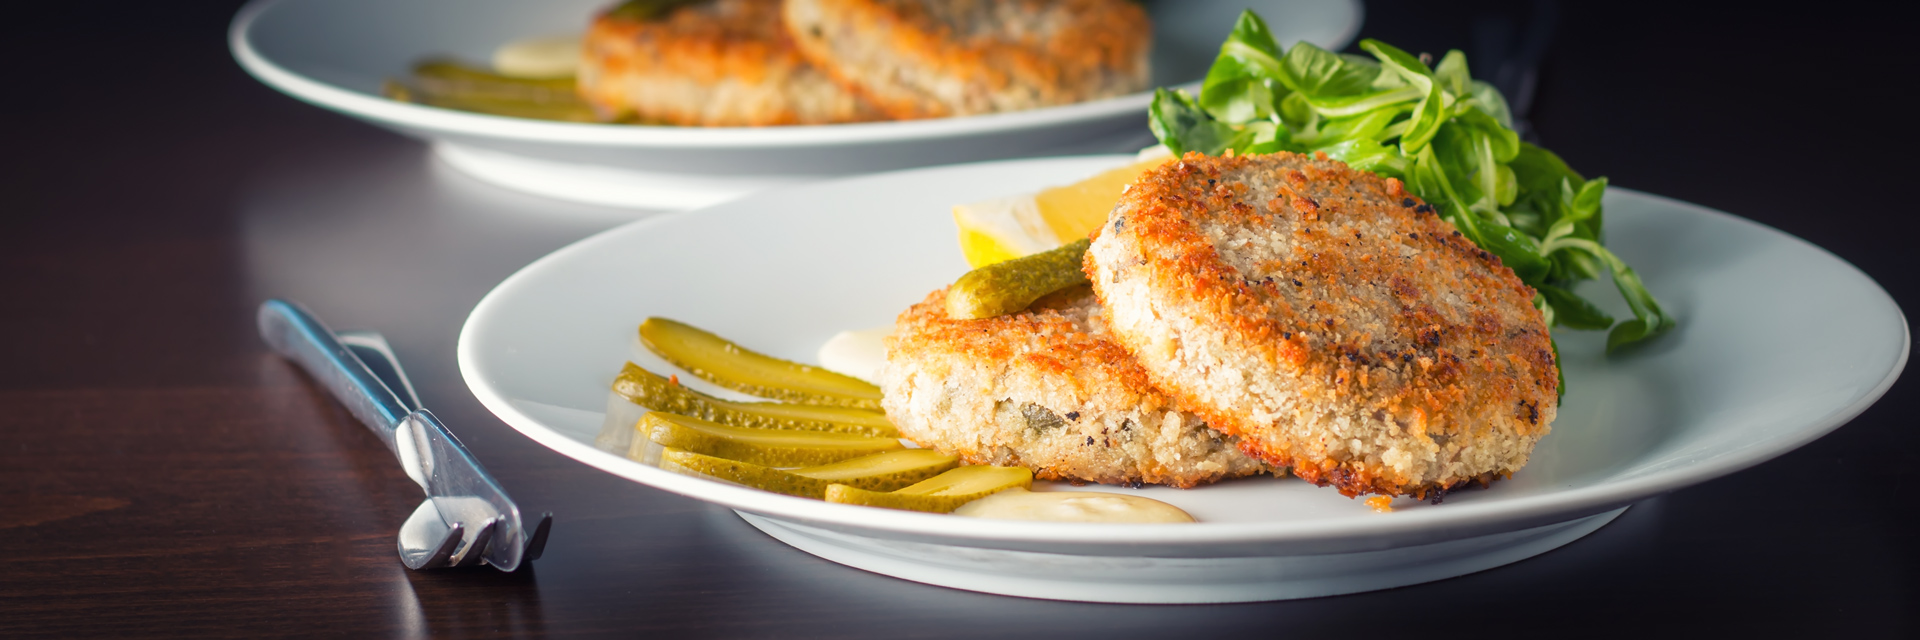 Canned Mackerel Cakes